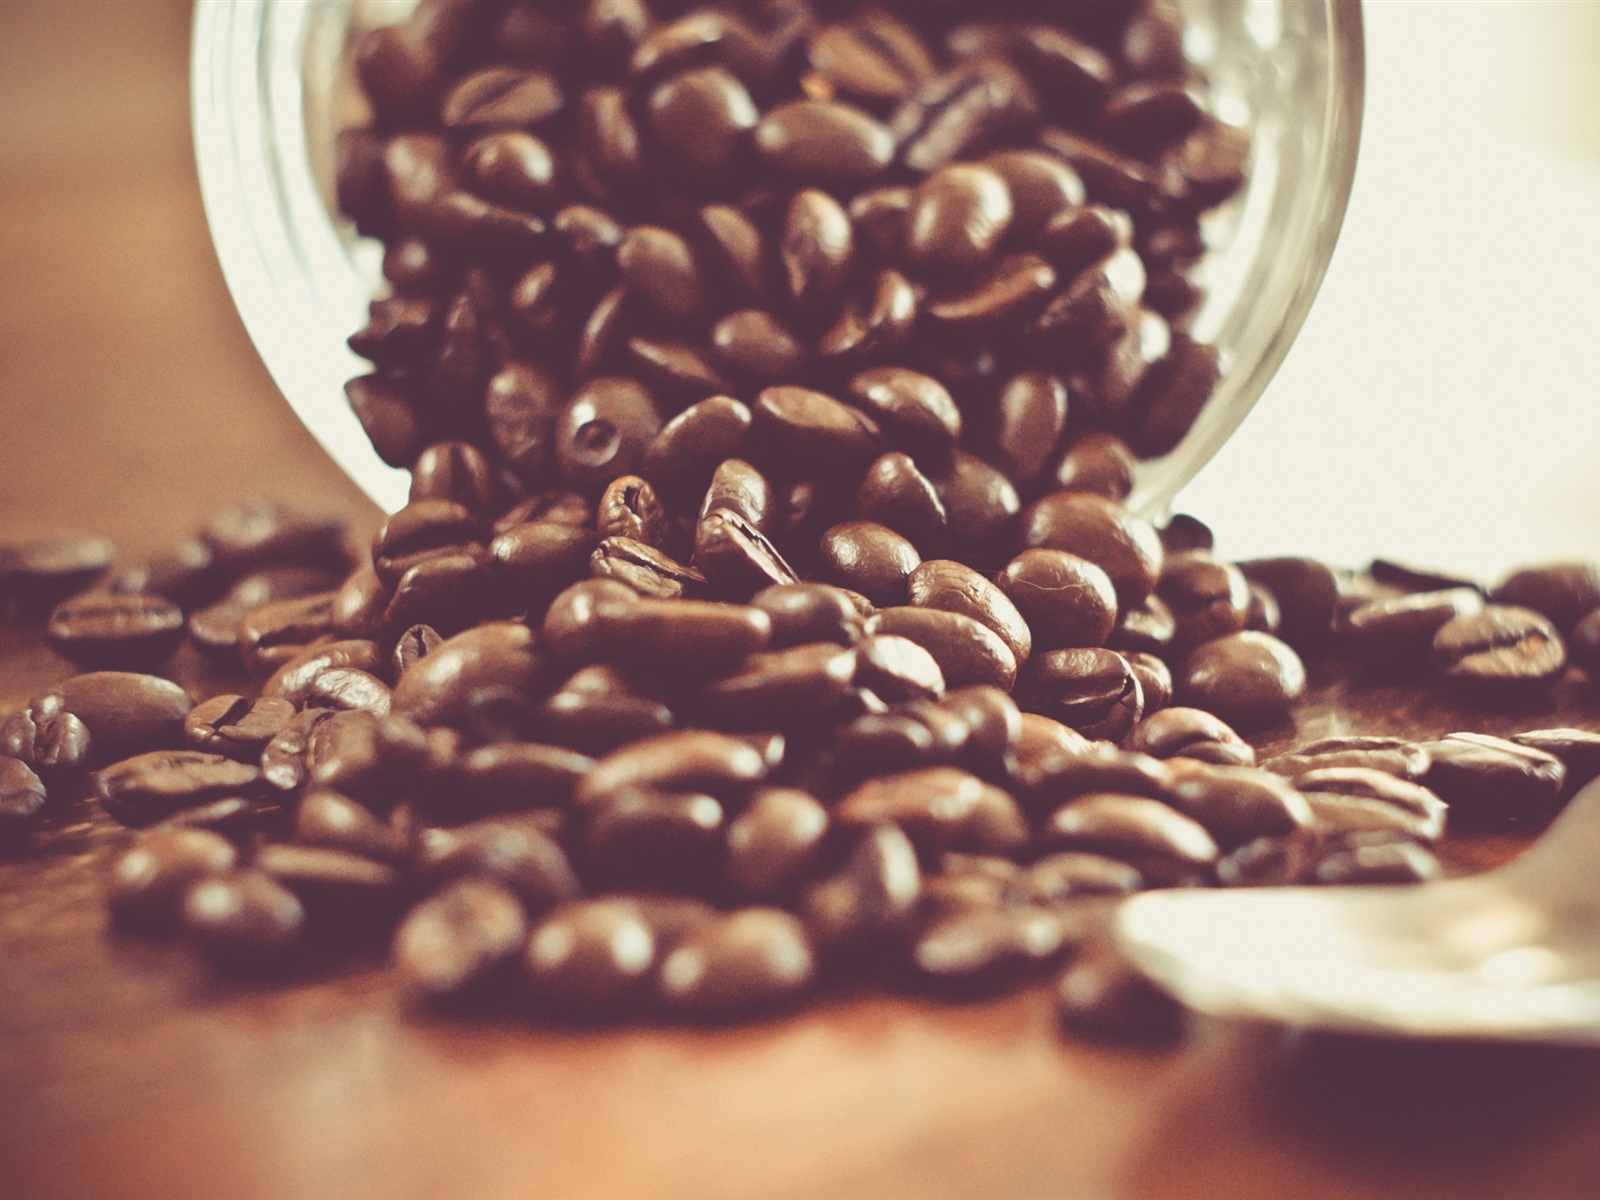 Coffee beans, spoon, drink, glass cup 1600x1200 wallpaper